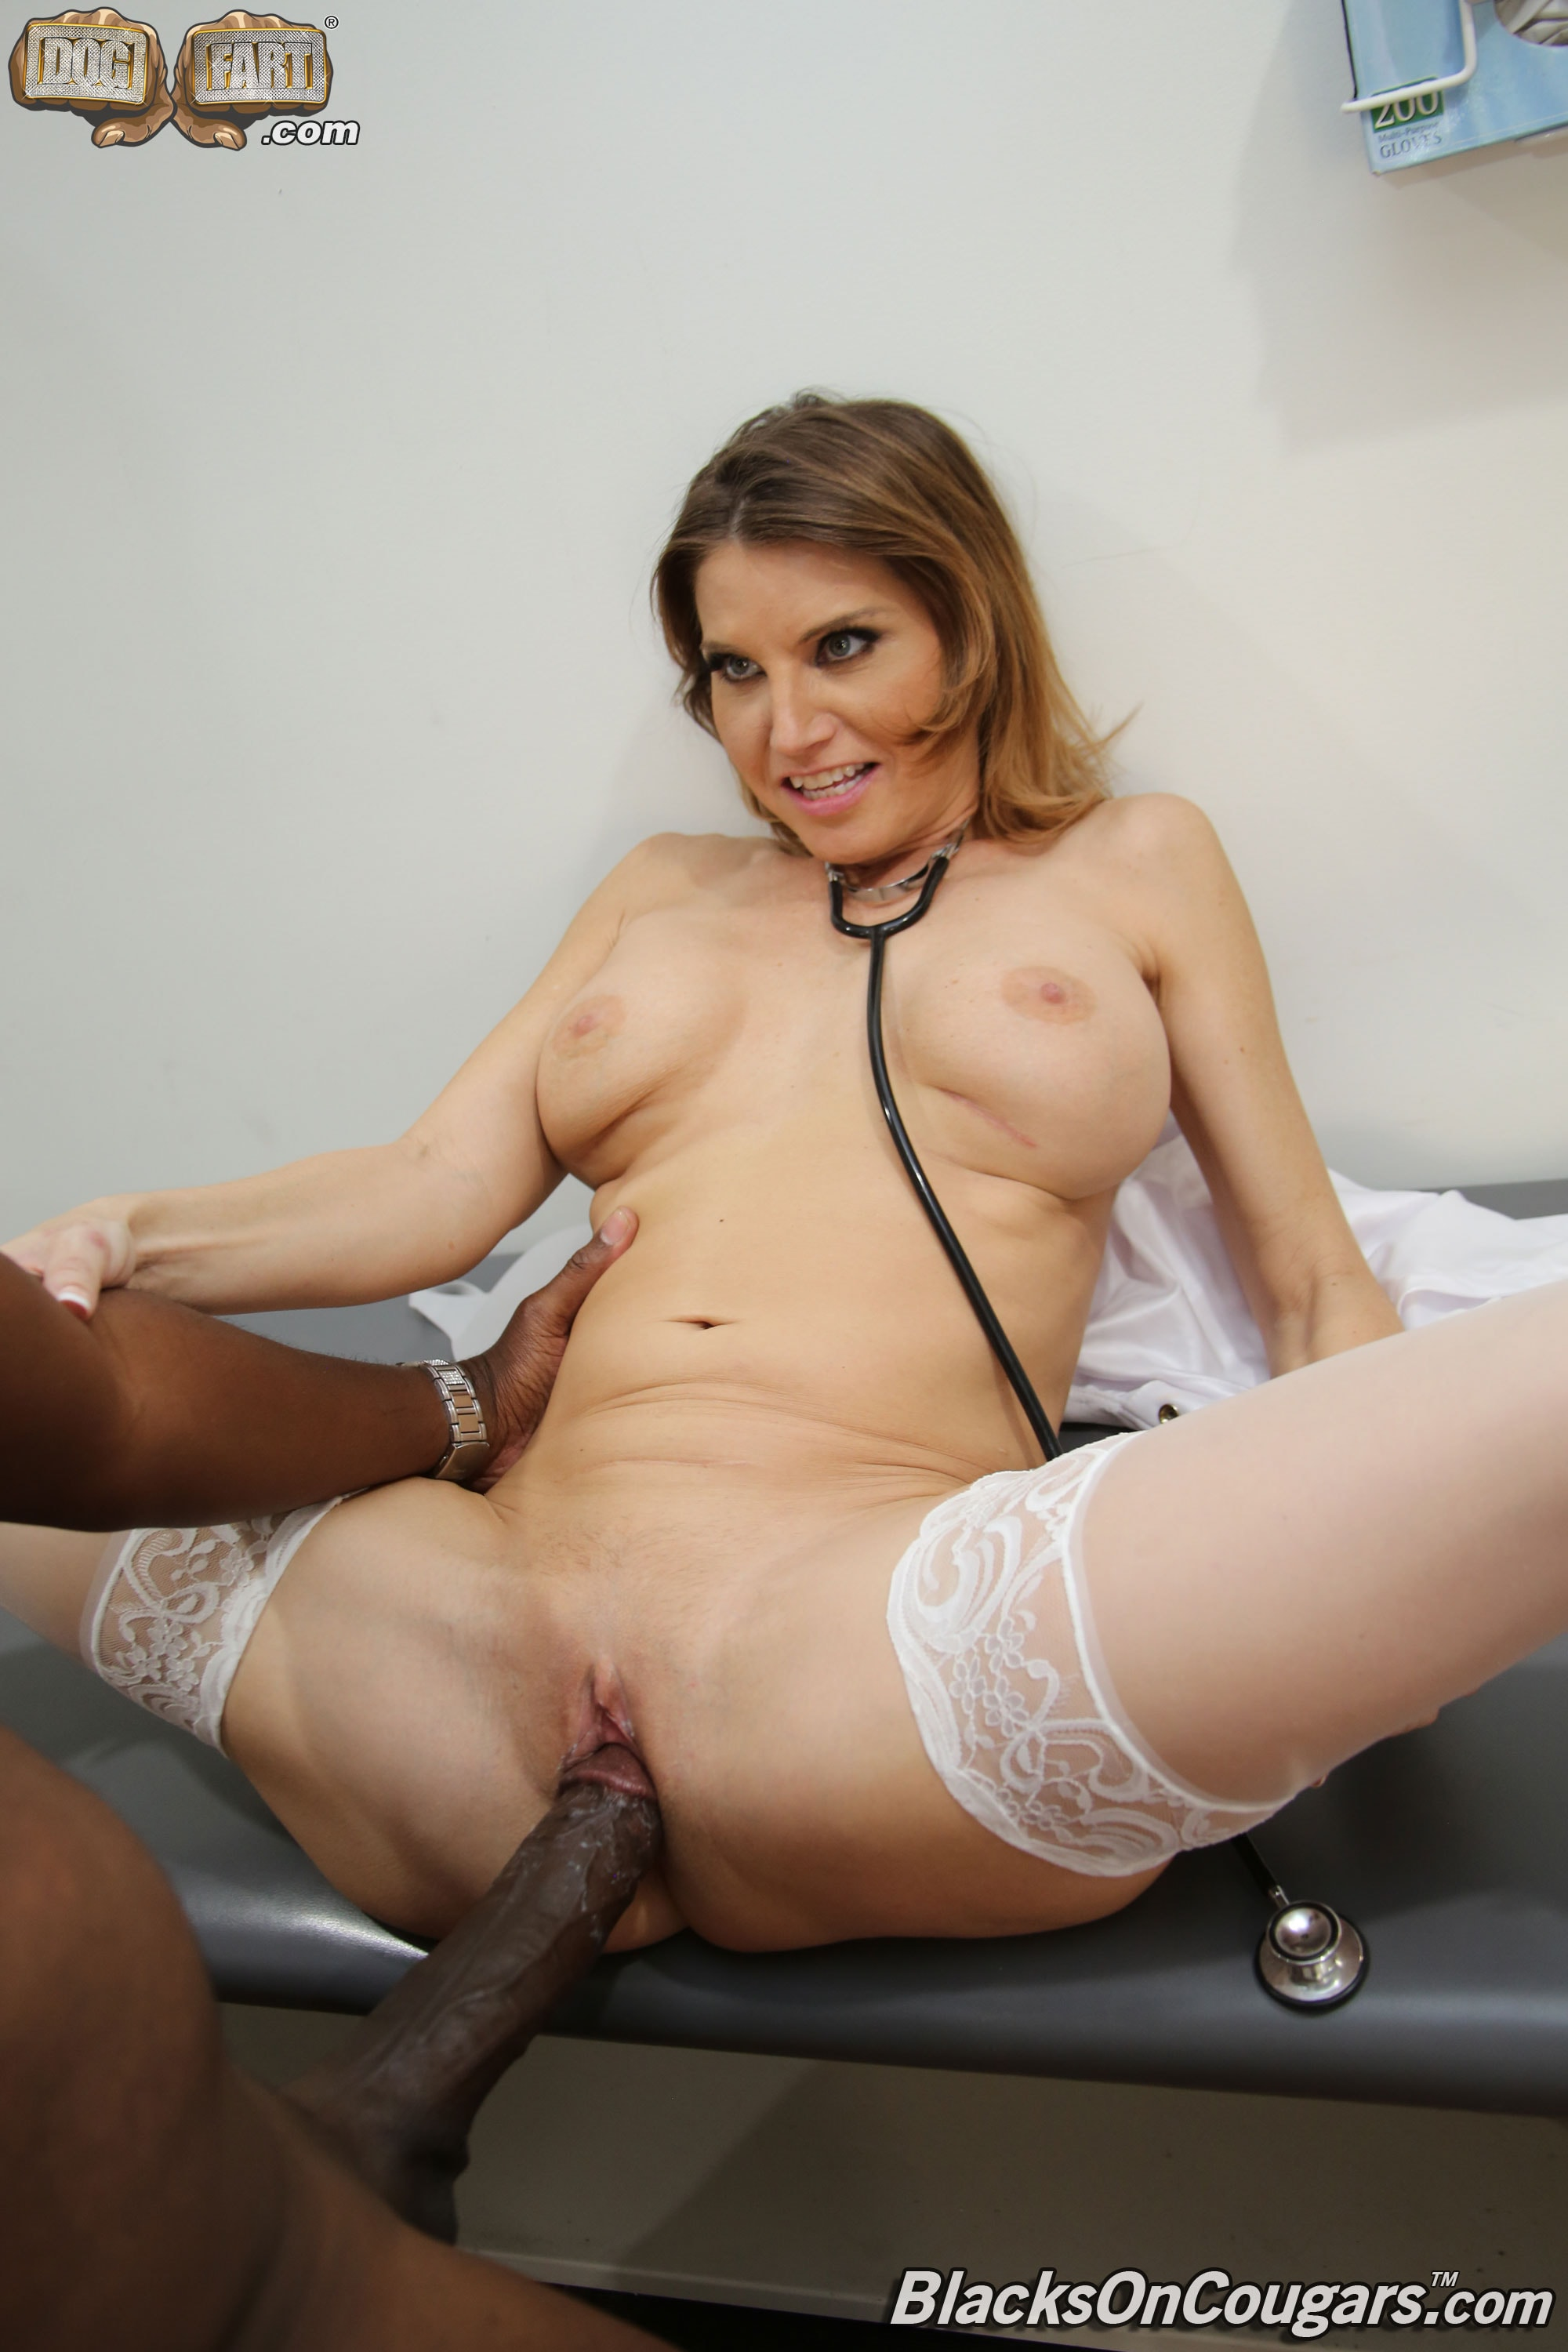 Dogfart 'Sky Rodgers - Blacks On Cougars' starring Sky Rodgers (photo 19)